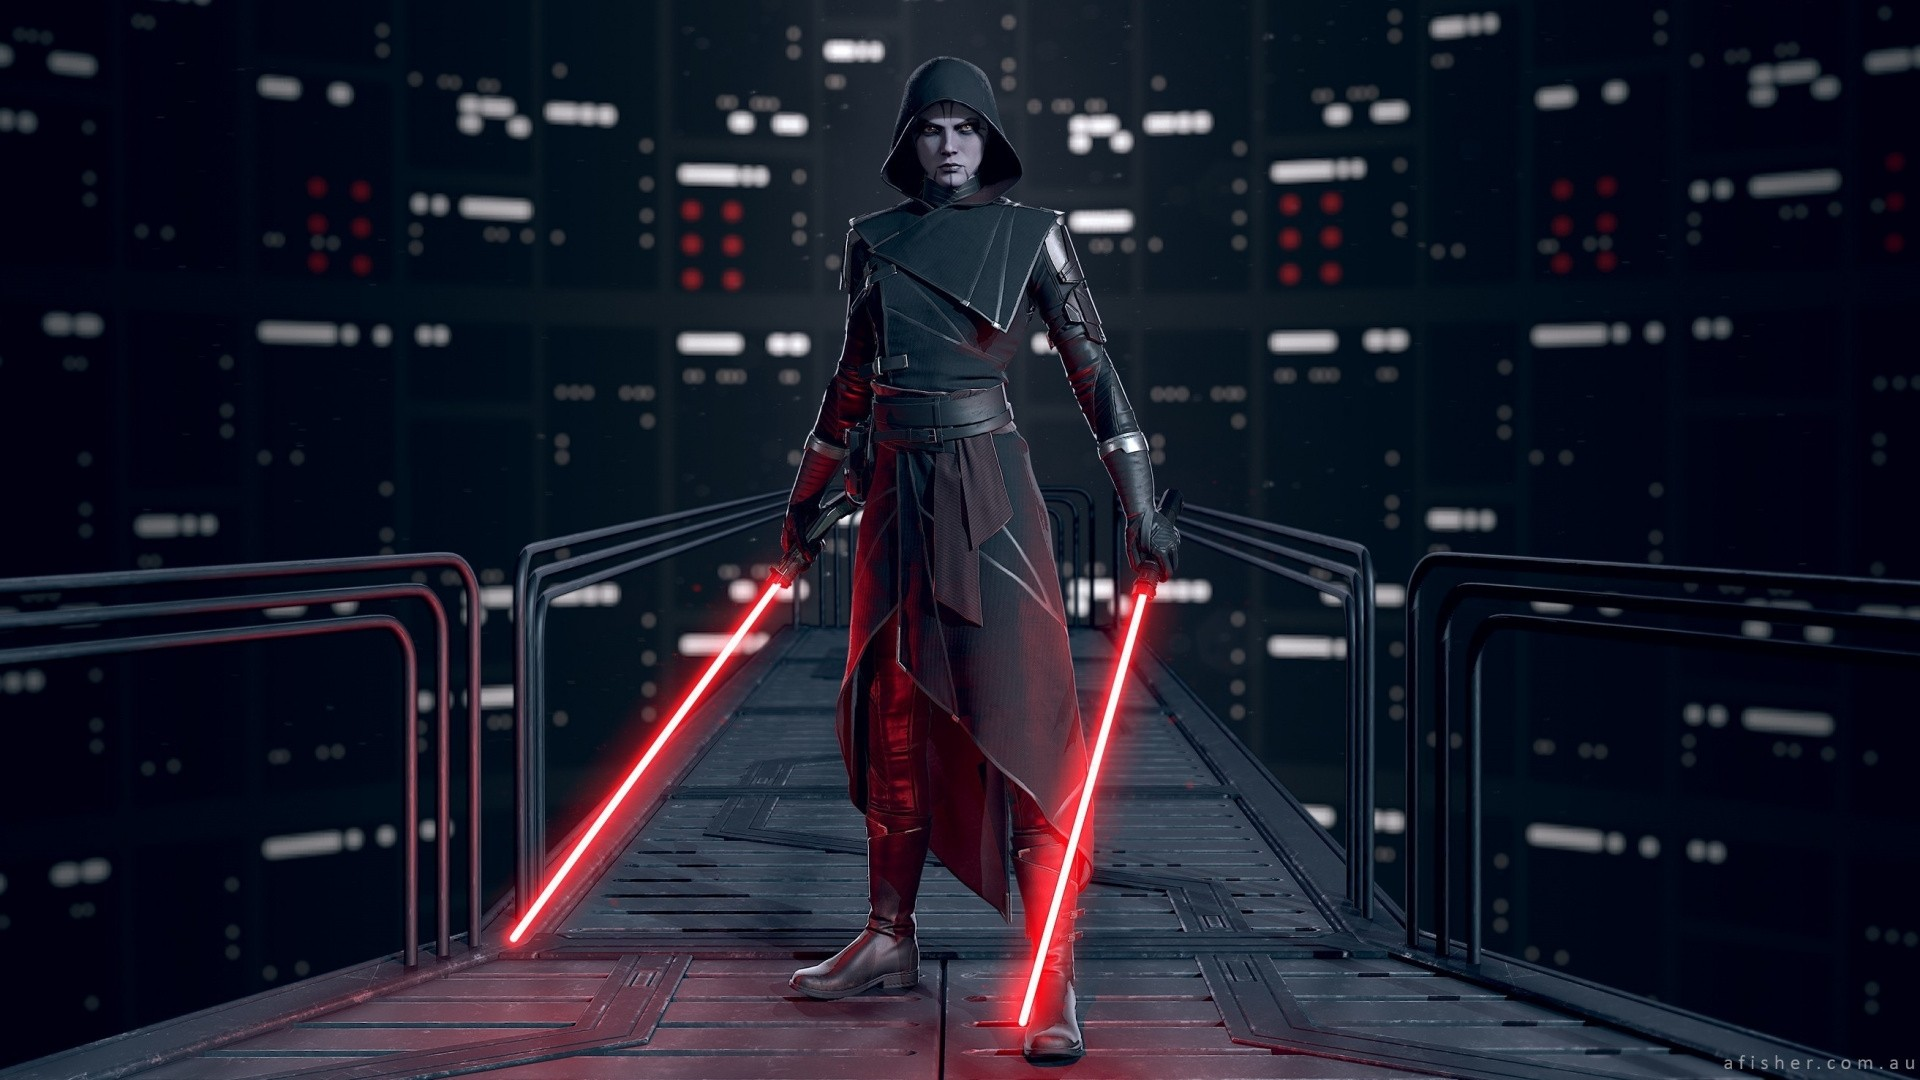 Sith Background